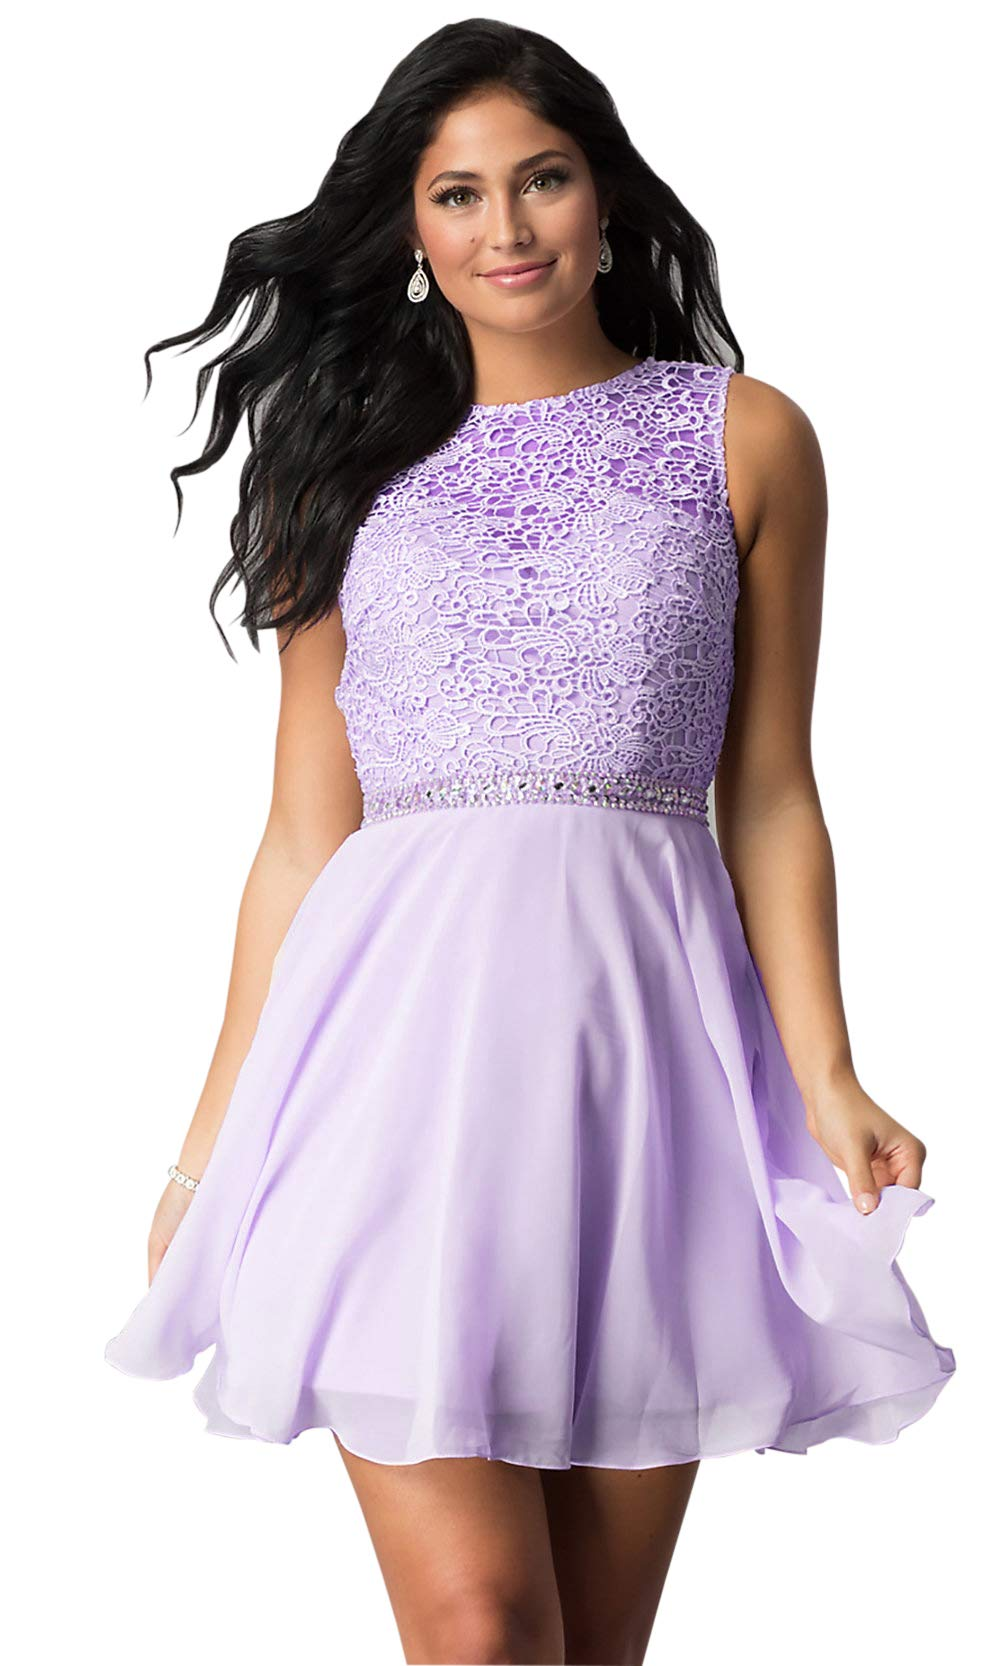 new york uk store cheaper Women's Open Back Beaded Lace Bridesmaid Dresses Short Wedding Party Gown  Lilac Size 4